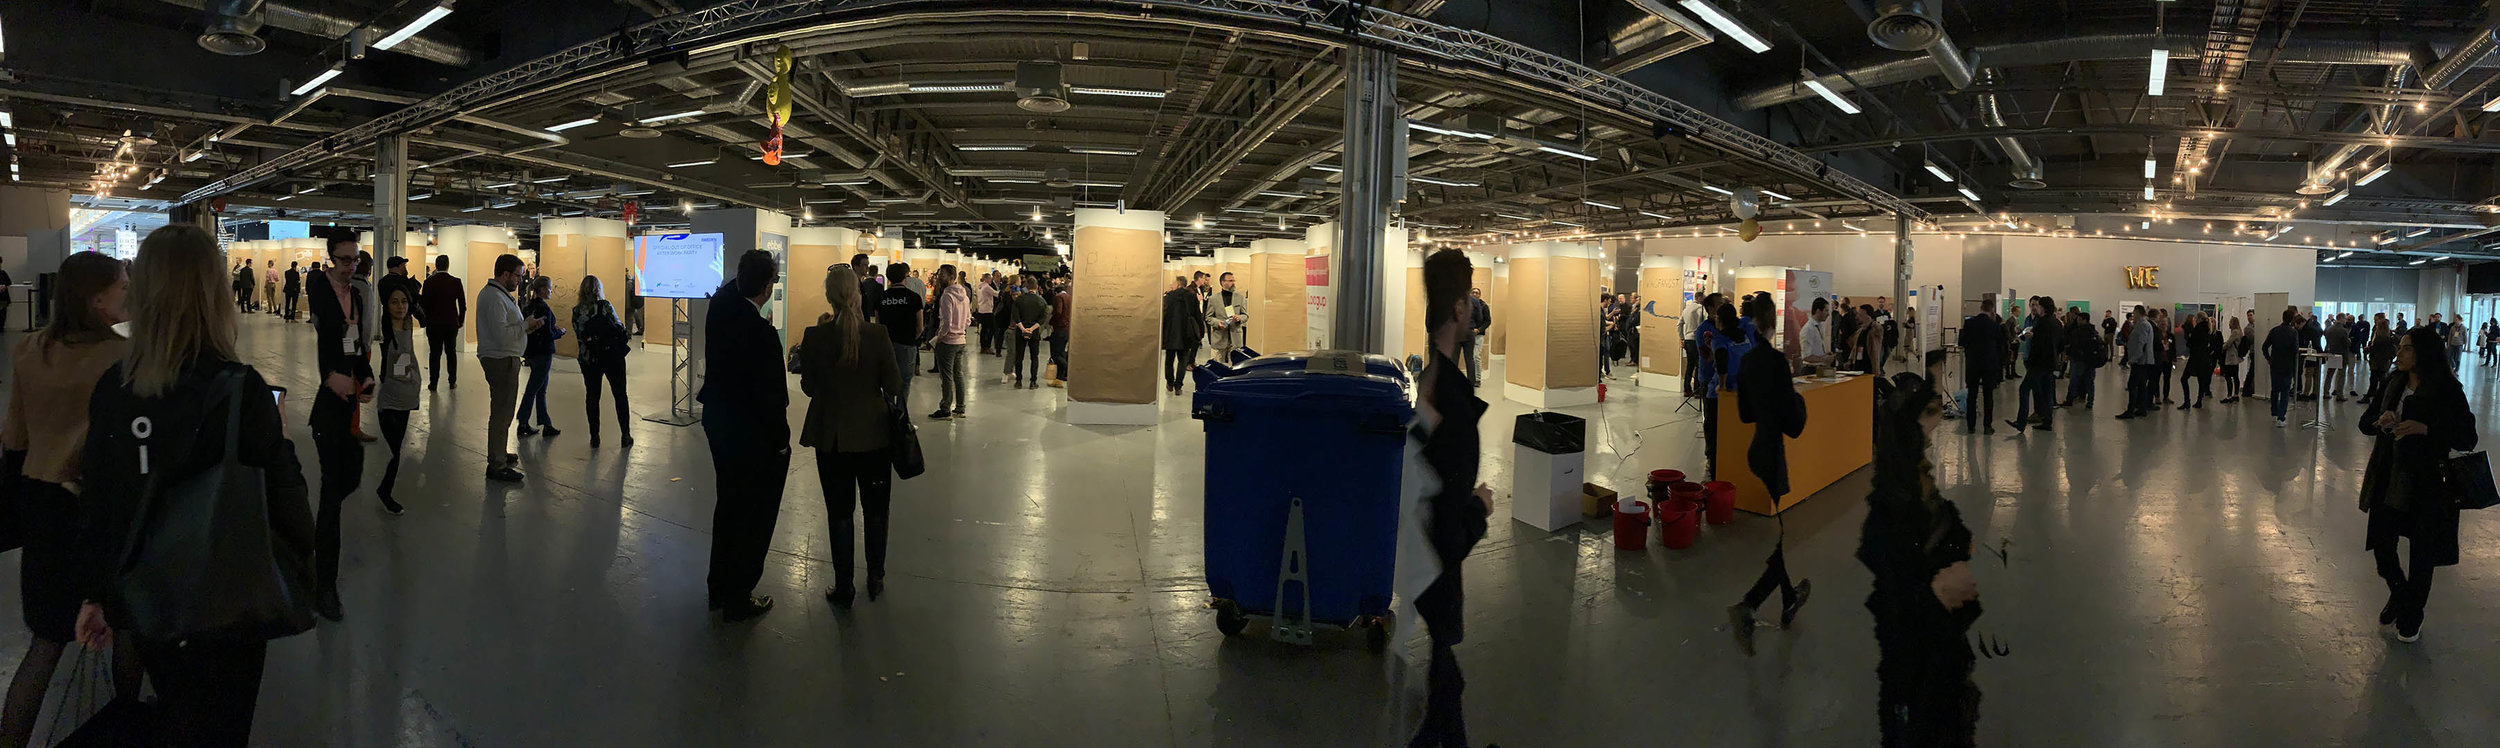 demo-day-panorama.jpg